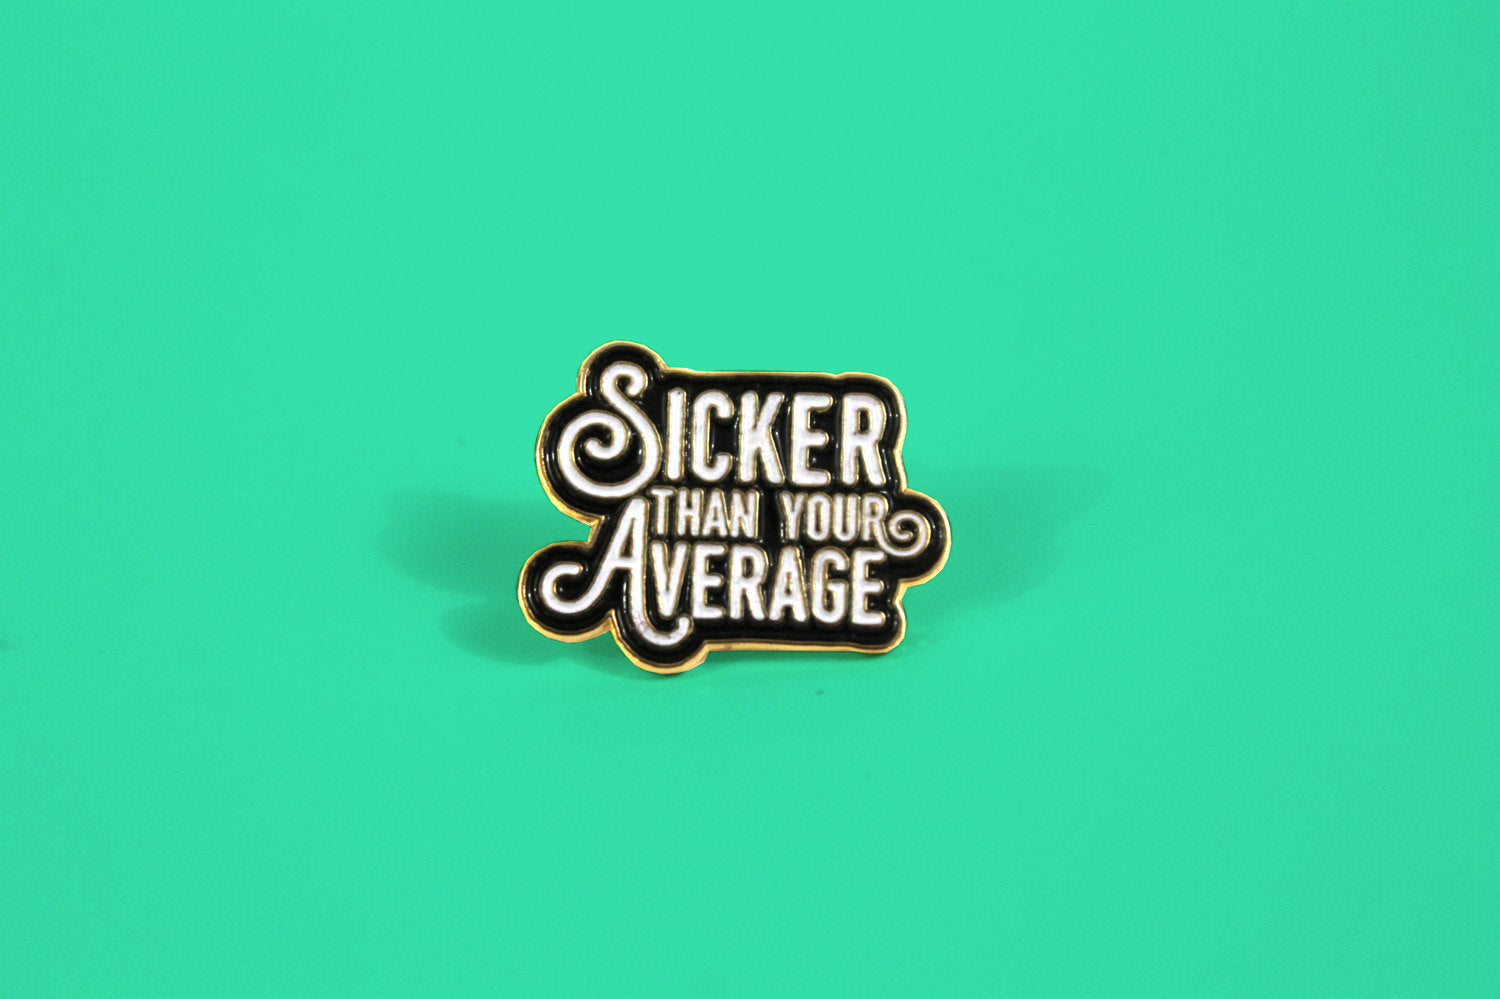 Sicker Thank Your Average Enamel Pin